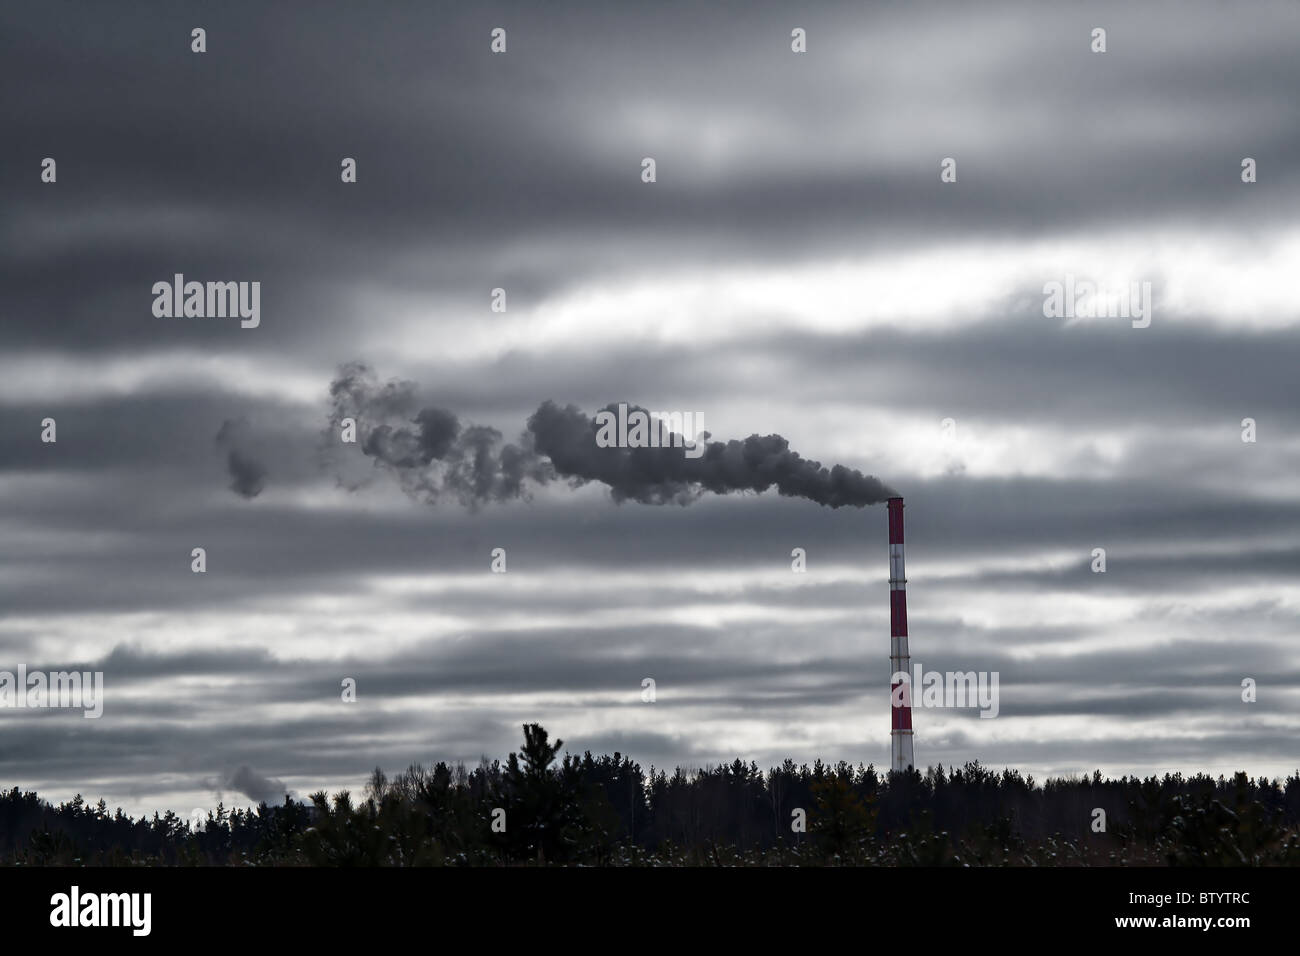 Industrial smog - Stock Image